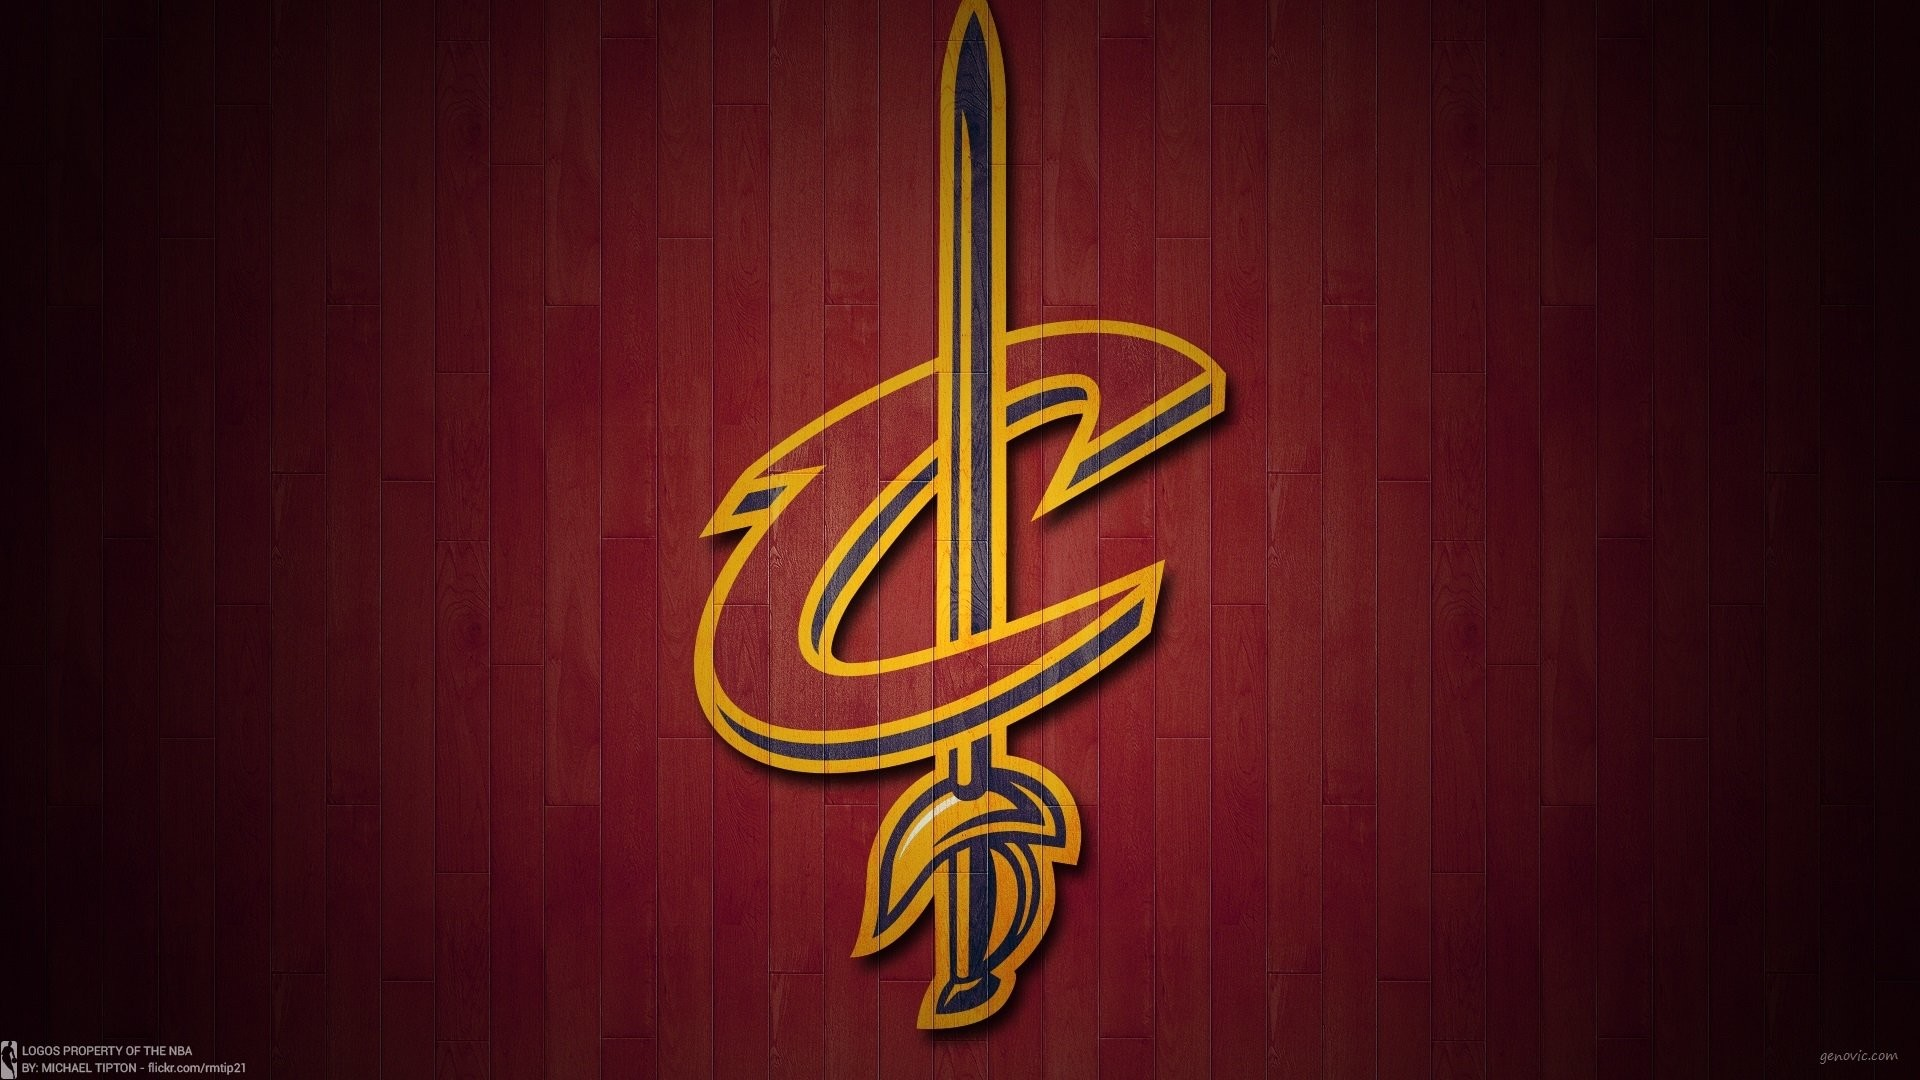 Cleveland hd wallpaper 78 images - Cleveland cavaliers wallpaper ...